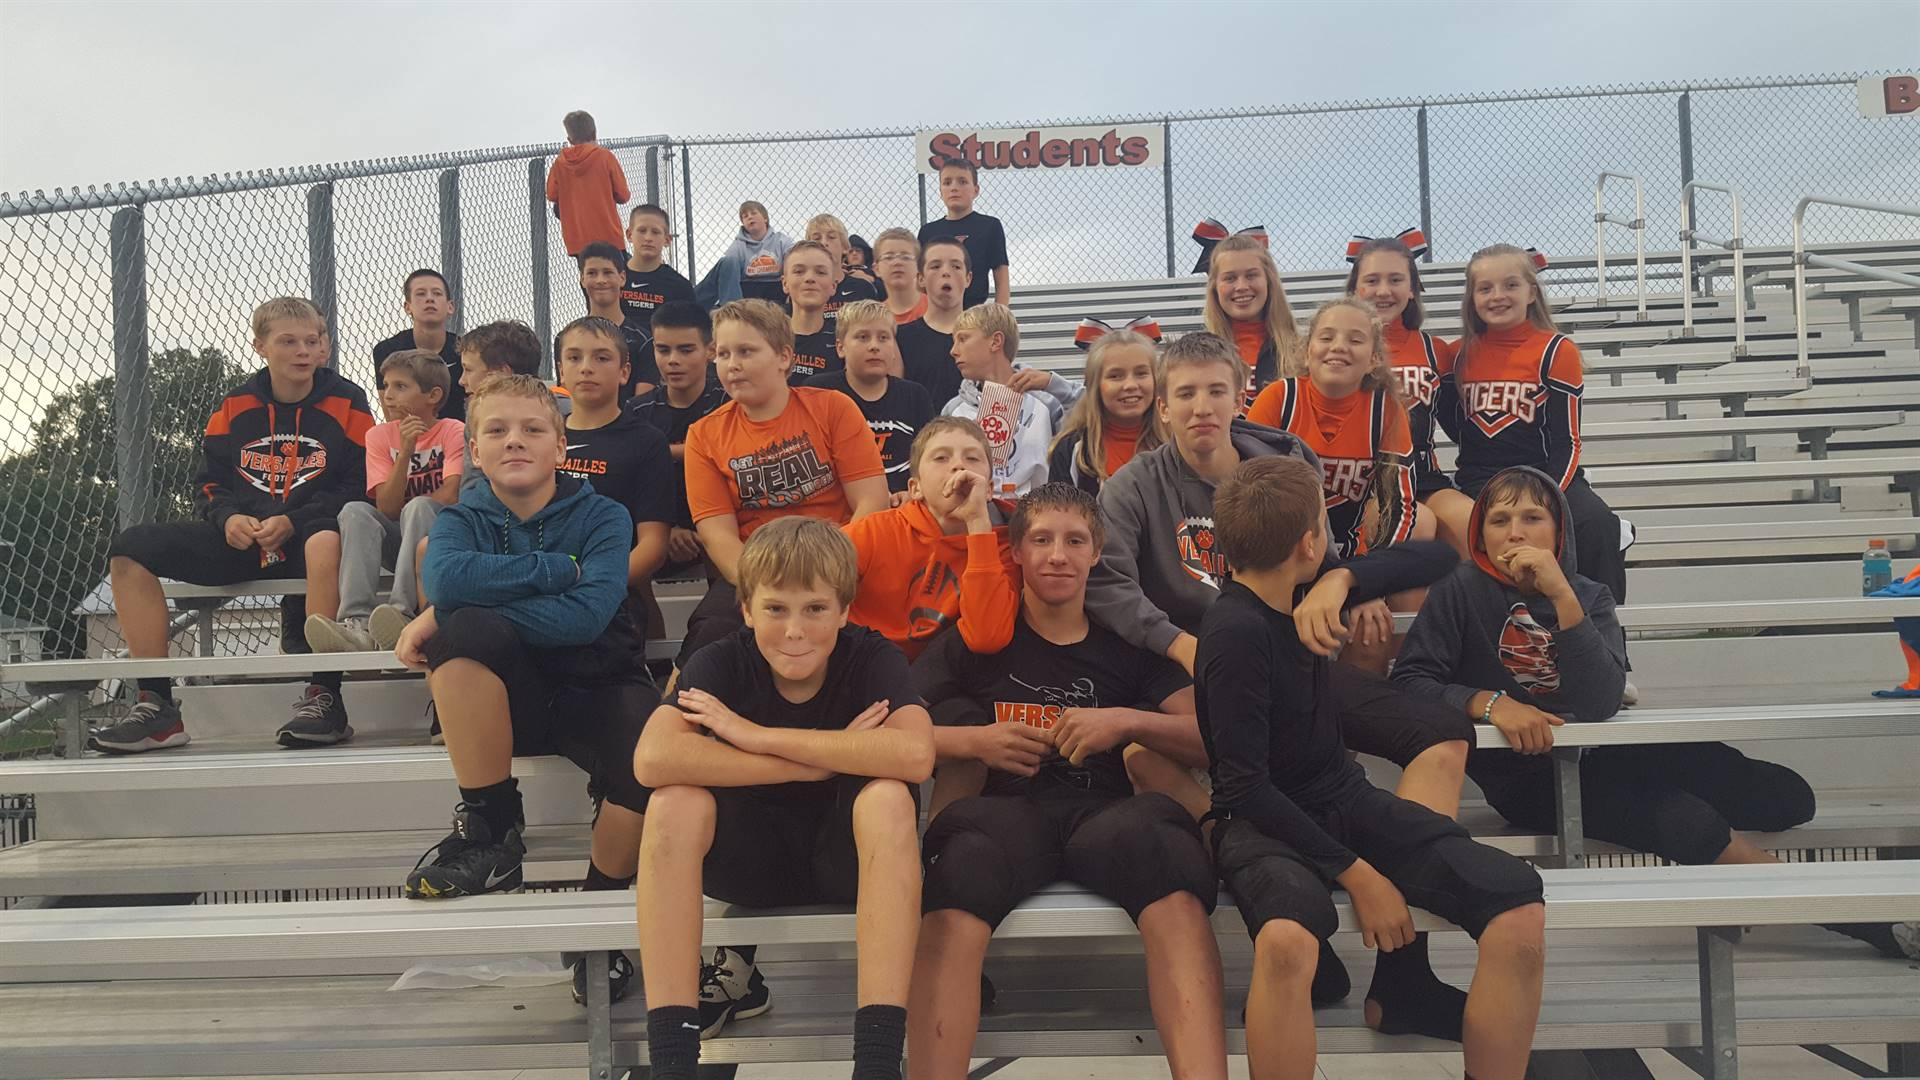 7th grade football with cheerleaders